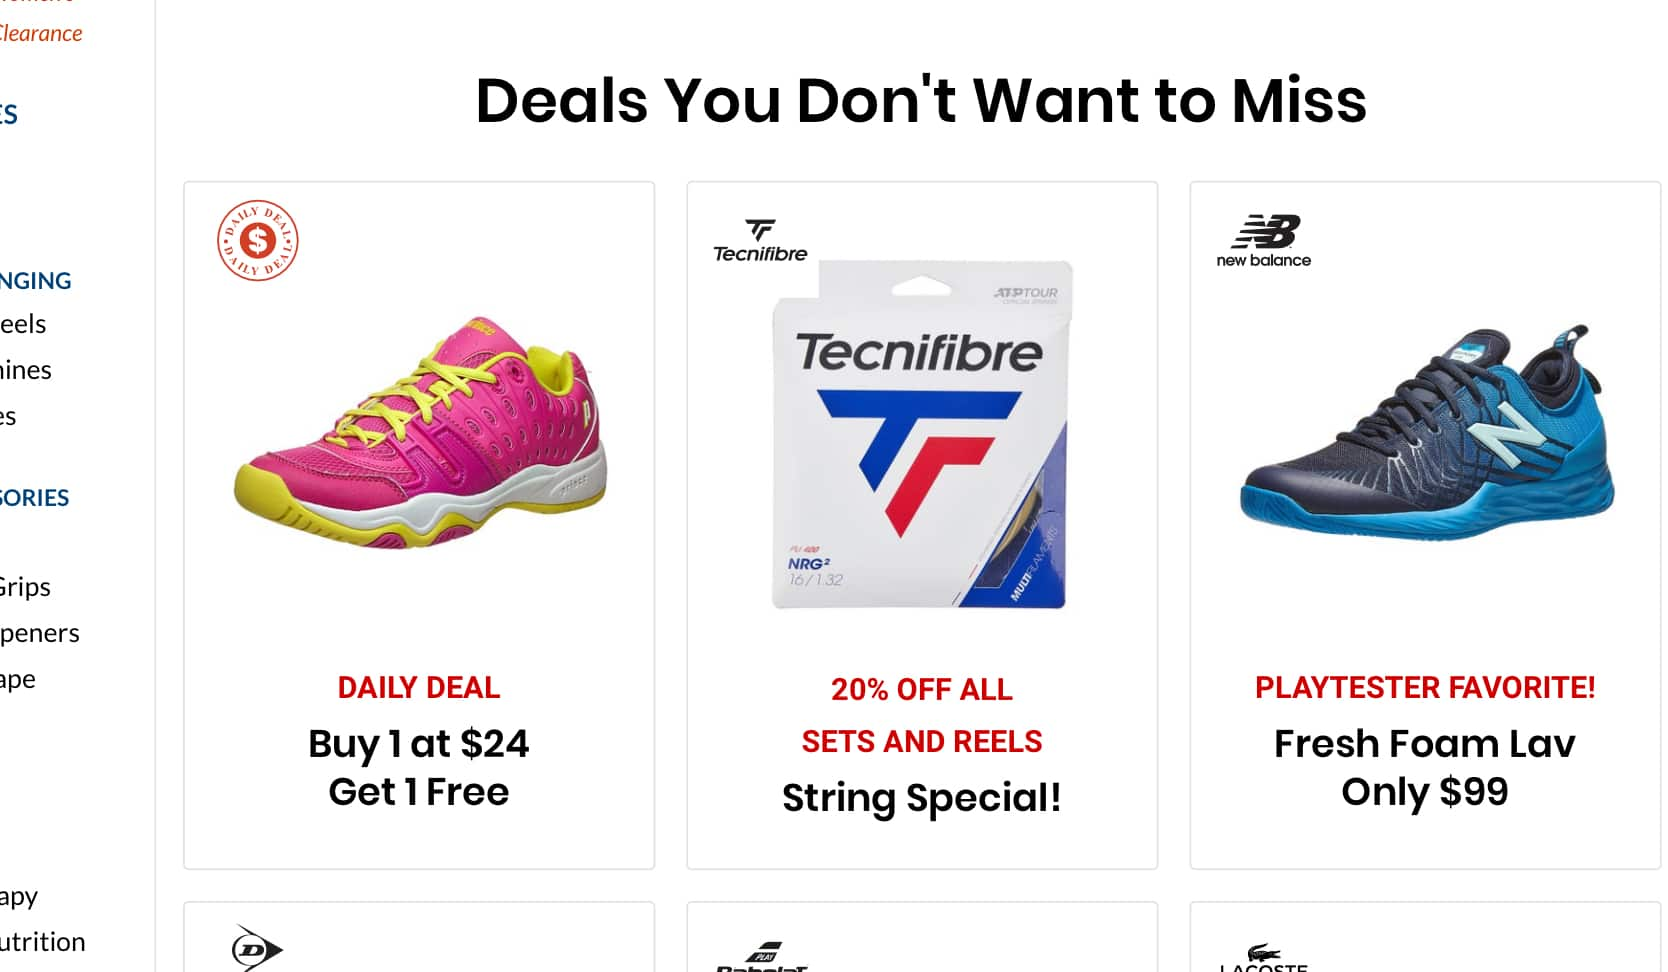 BOGO Prince T22 Pink Yellow Girl's Junior Tennis shoes $24 + free shipping with orders $50+ @tennis warehouse